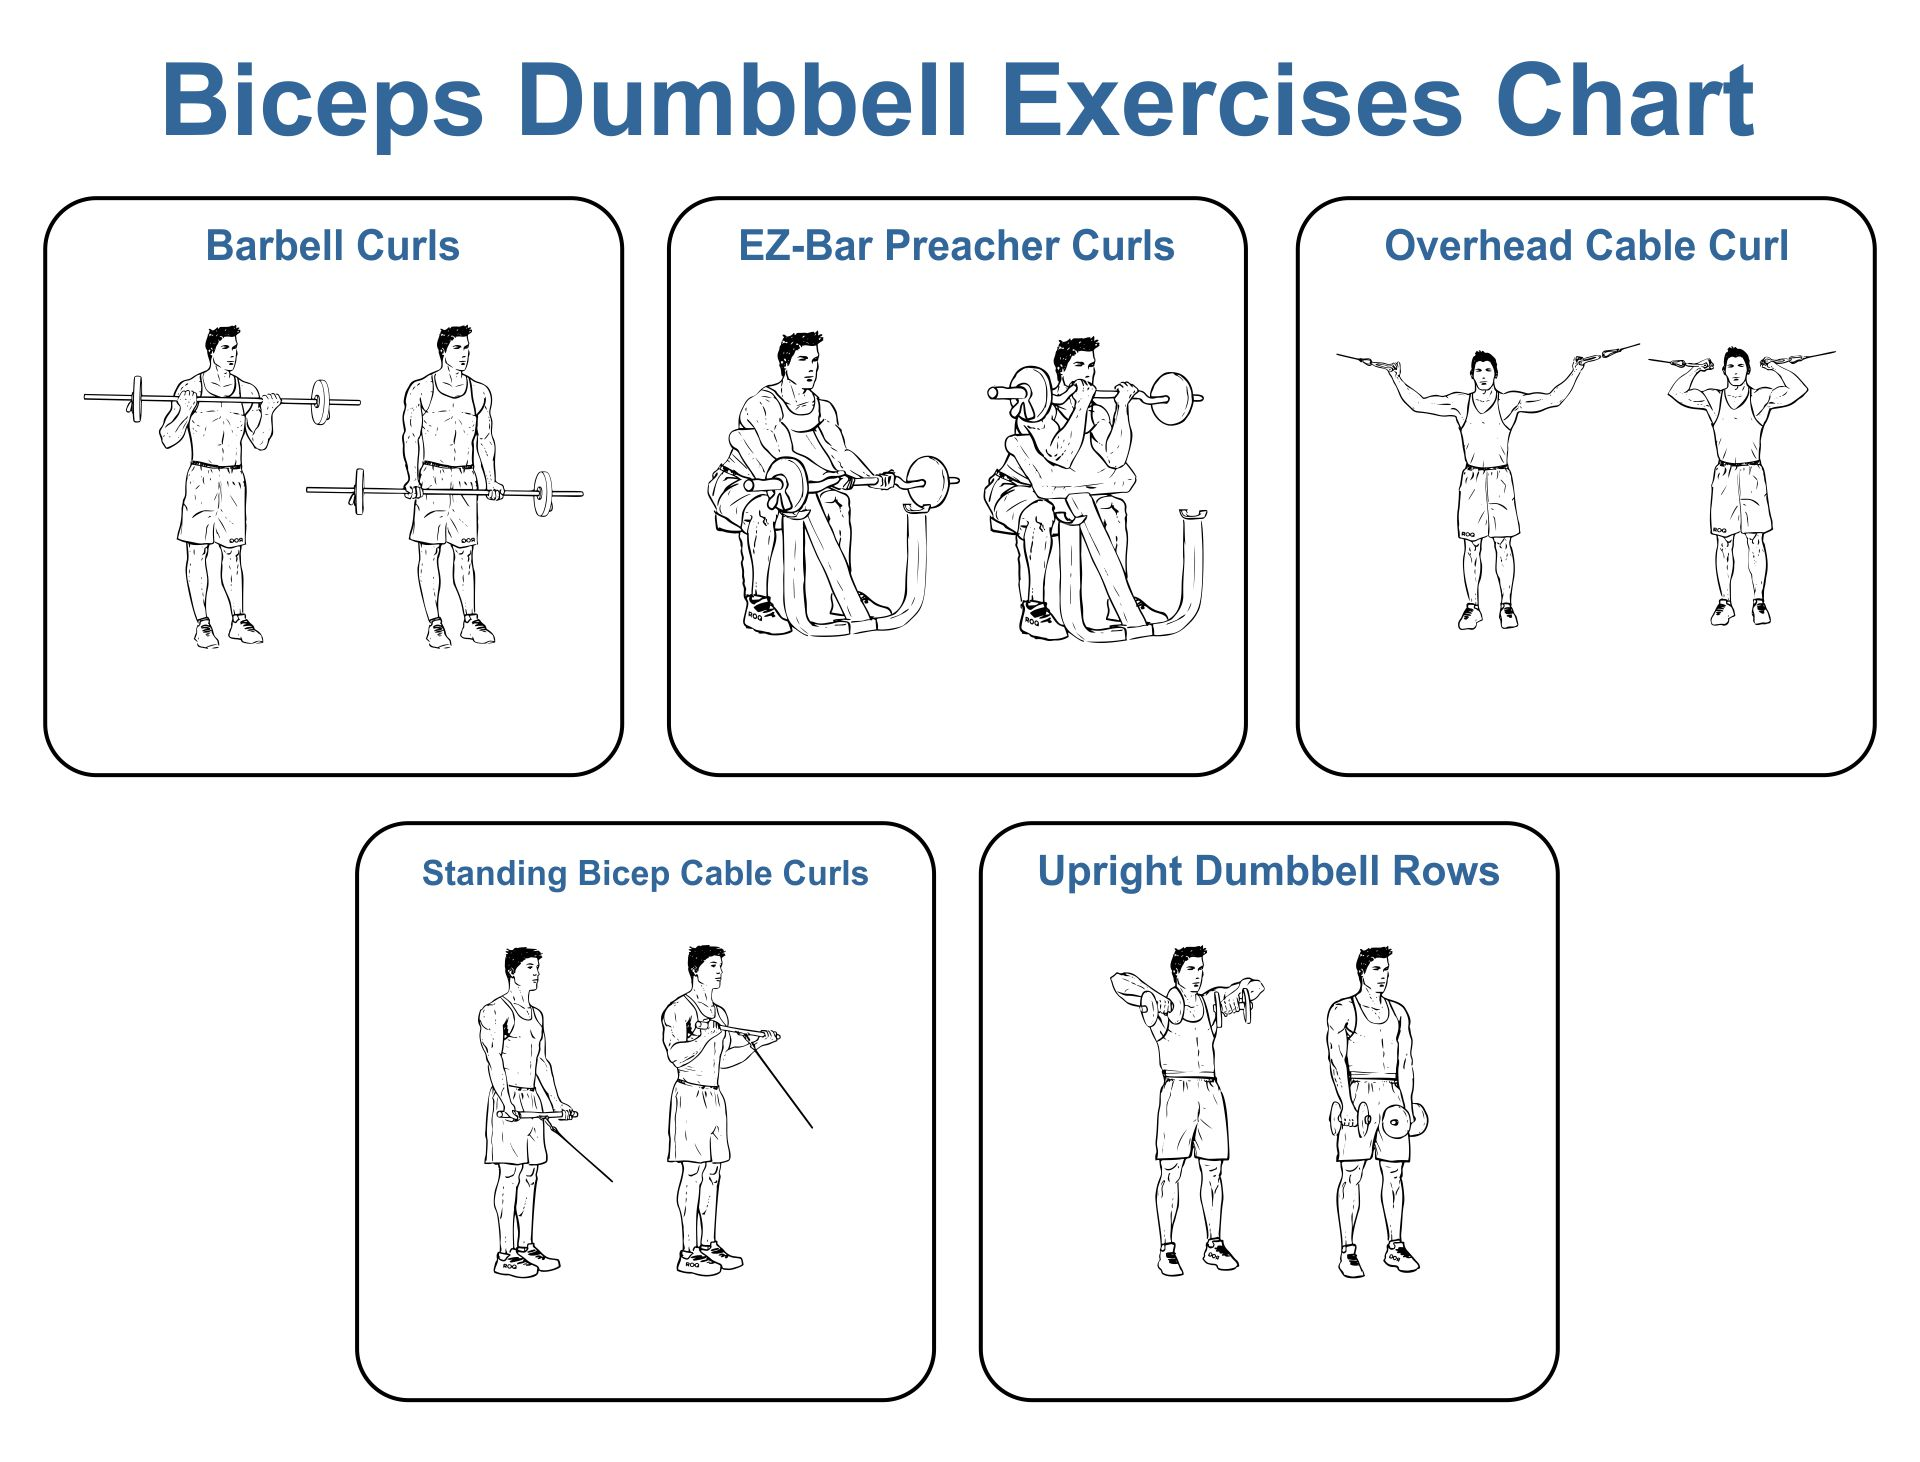 Biceps Dumbbell Exercises Chart